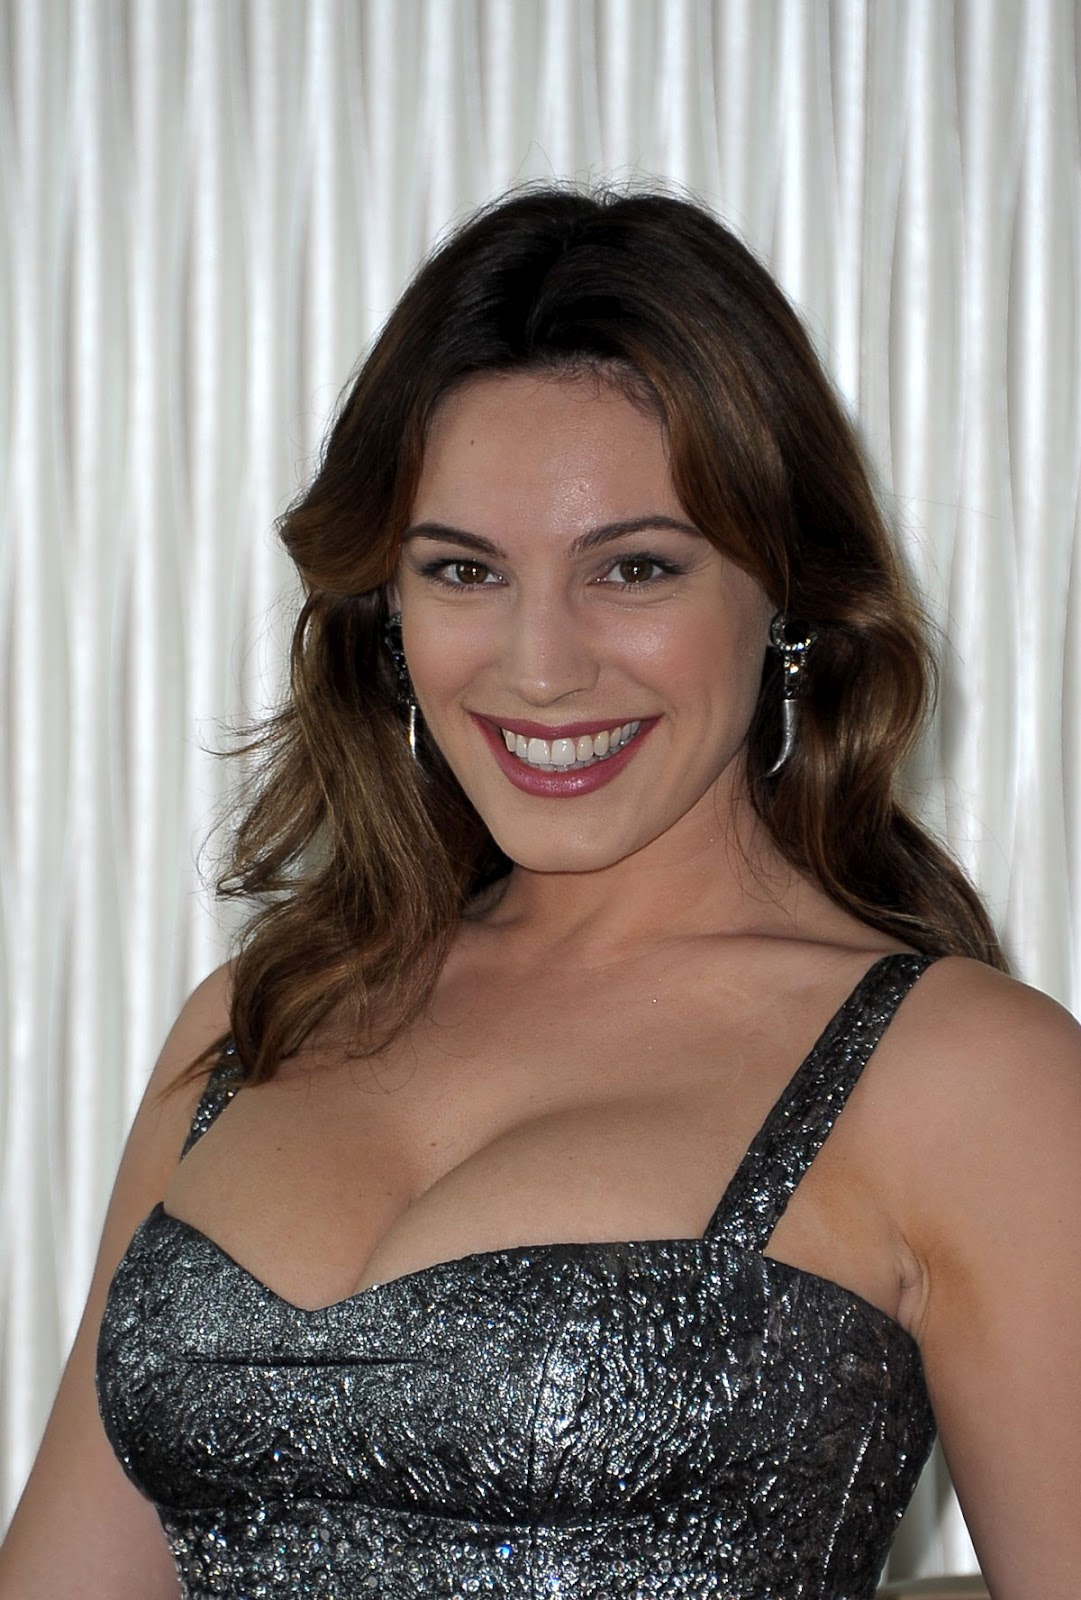 KELLY BROOK at 2012 Ischia Global Fest Photocall in Milan